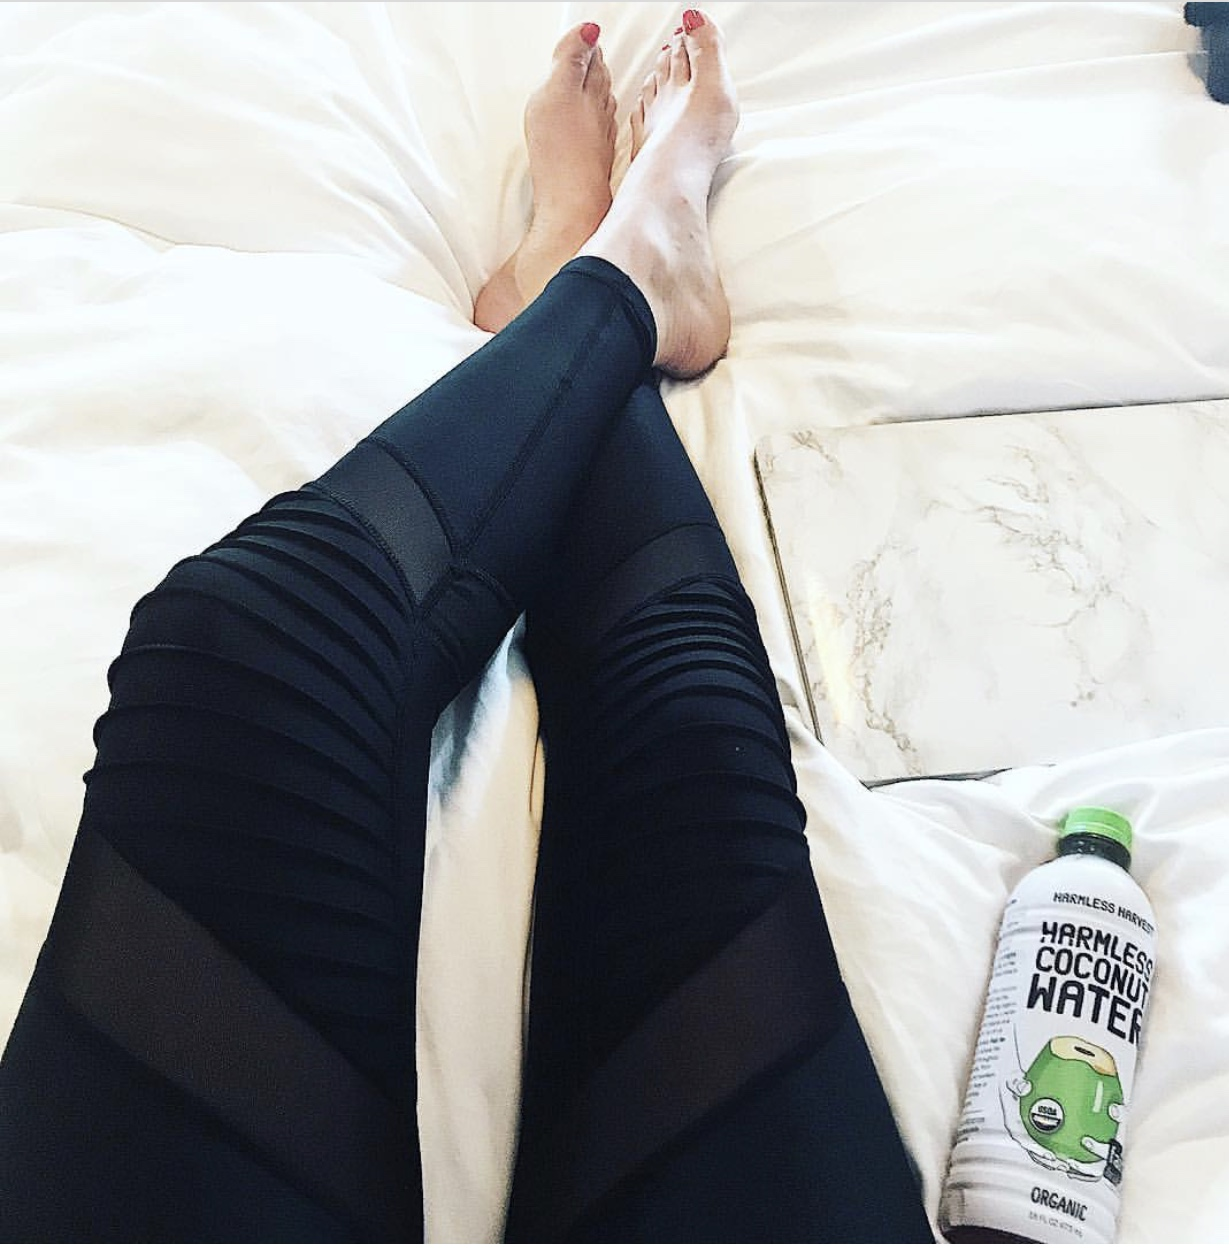 black moto mesh leggings - my favorite fashionable workout/ lounge in bed/ run errands leggings retail for $90get 20% off with jackie20shop here : 44evergreen.com. - xoxojackie